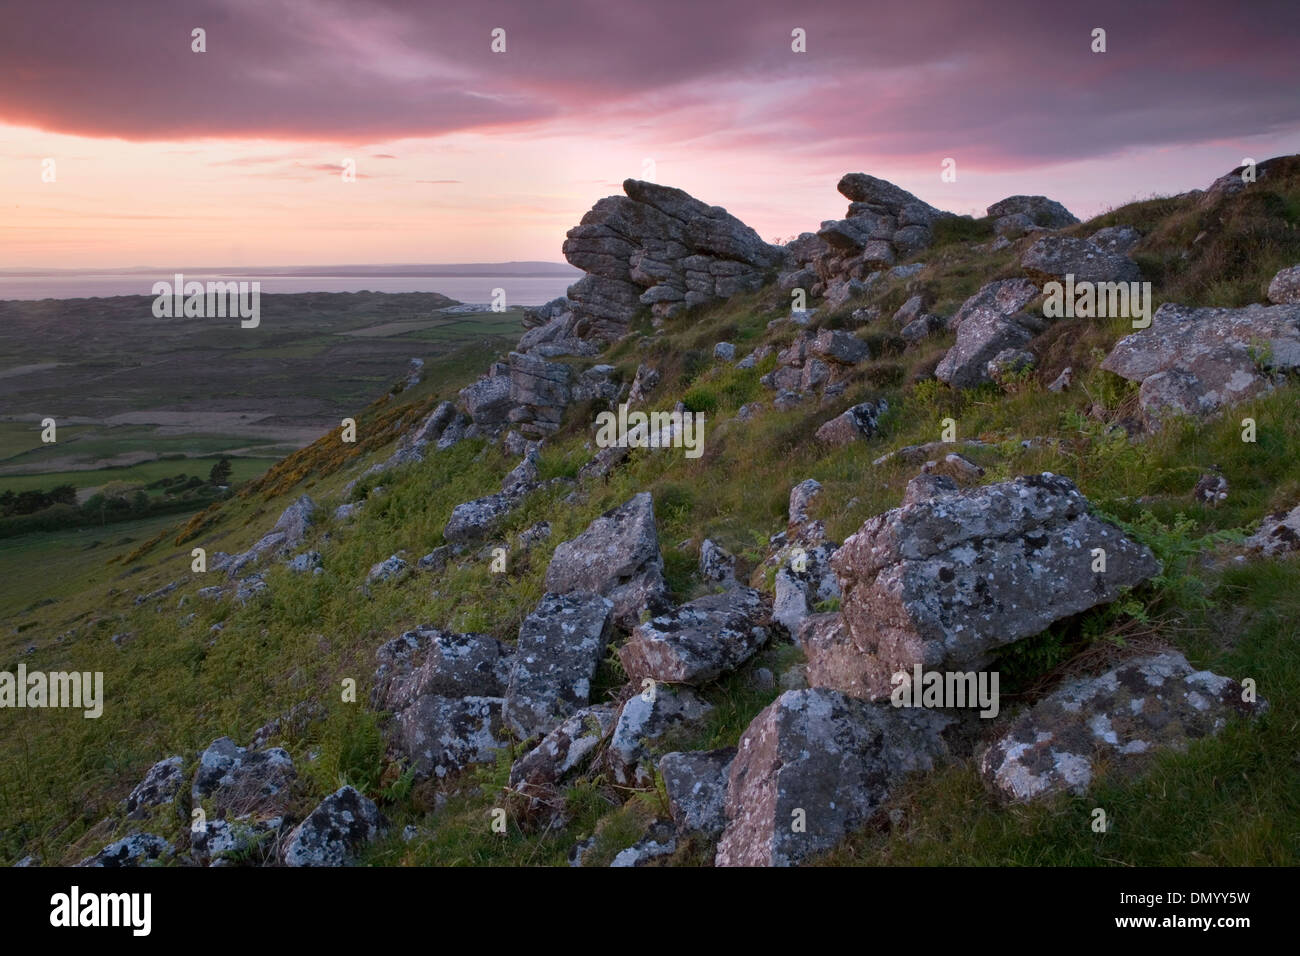 The last light of day lingers over the moorland near Llangennith and Rhossili Bay, Gower Peninsula, South Wales. Stock Photo